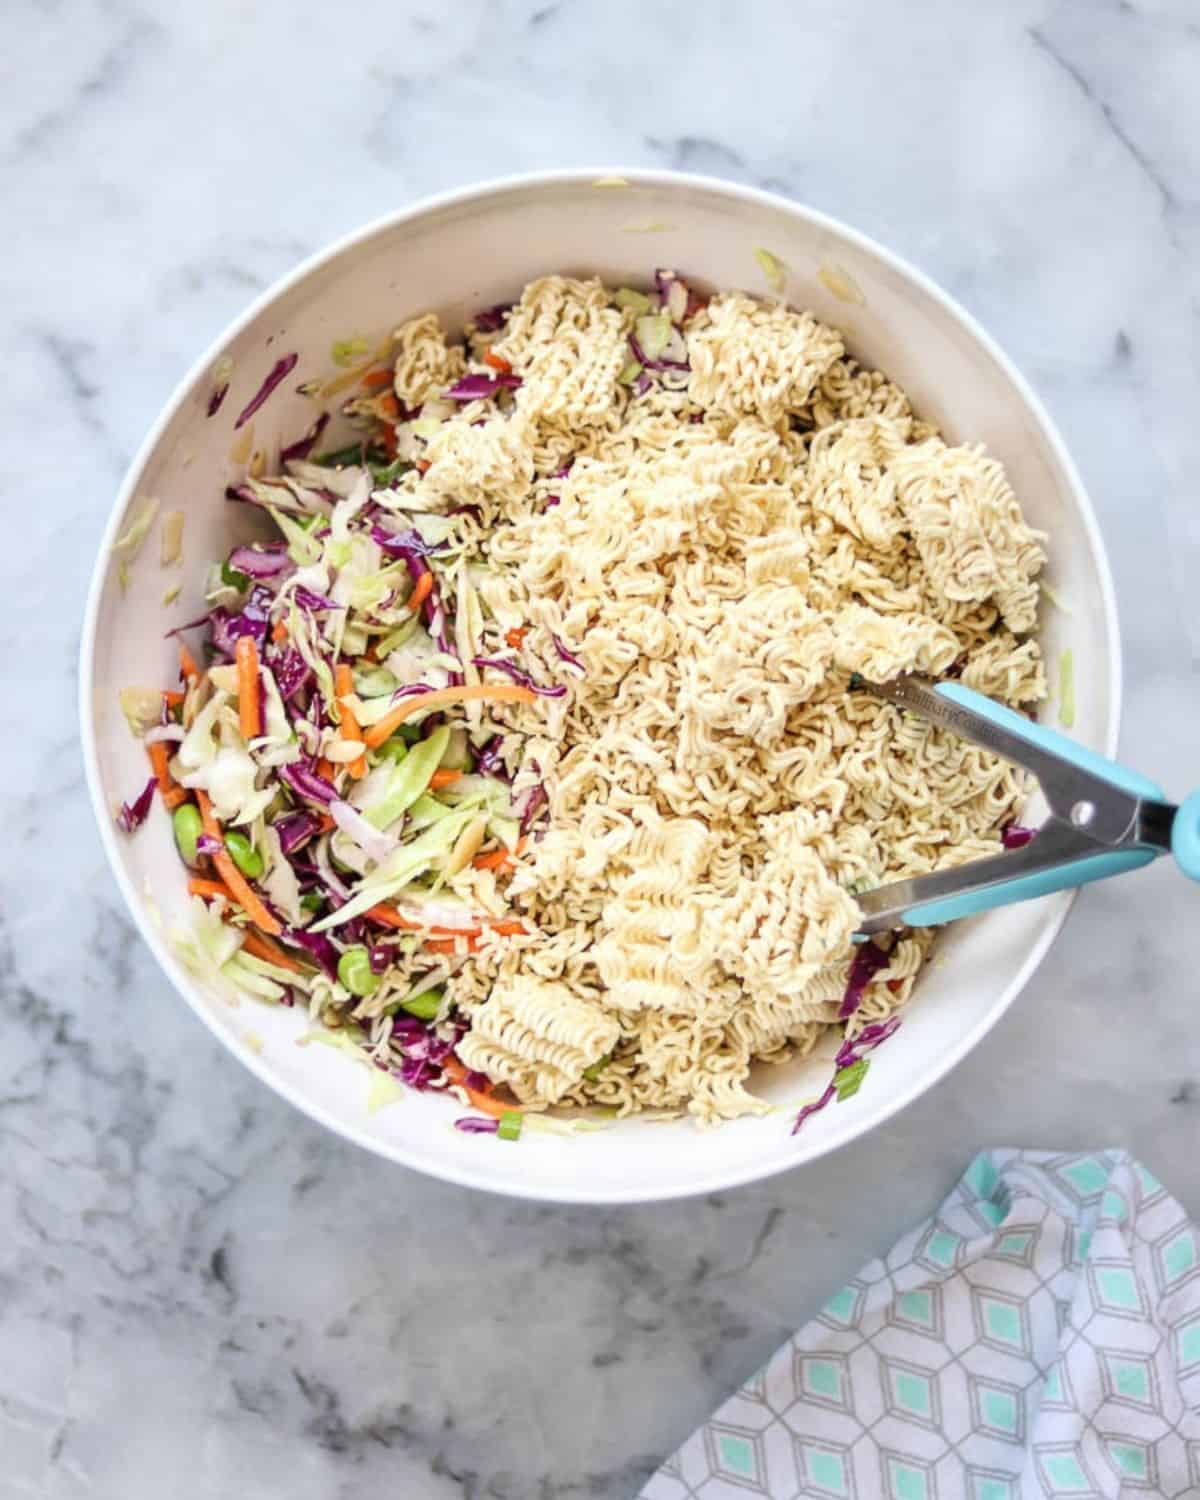 Crunchy ramen noodles and cabbage salad ingredients in a bowl.